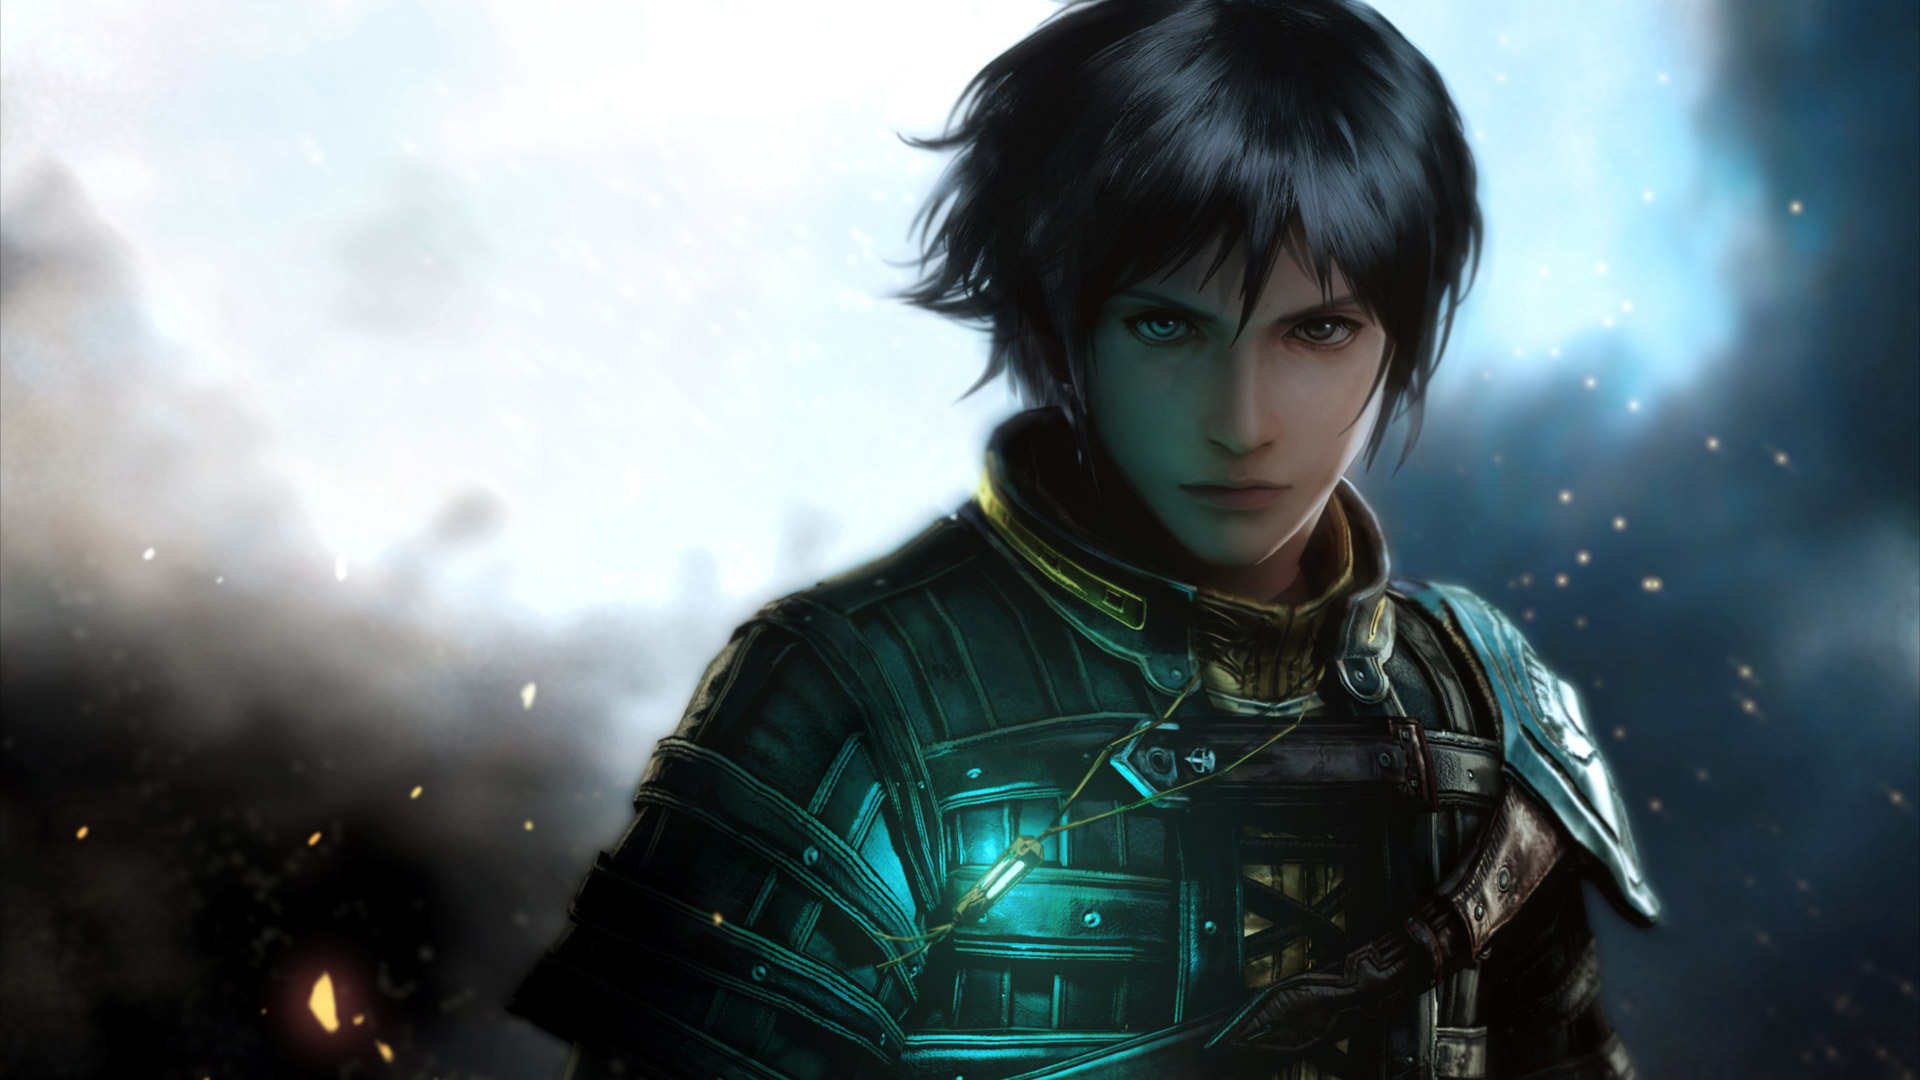 The Last Remnant Wallpaper in 1920x1080